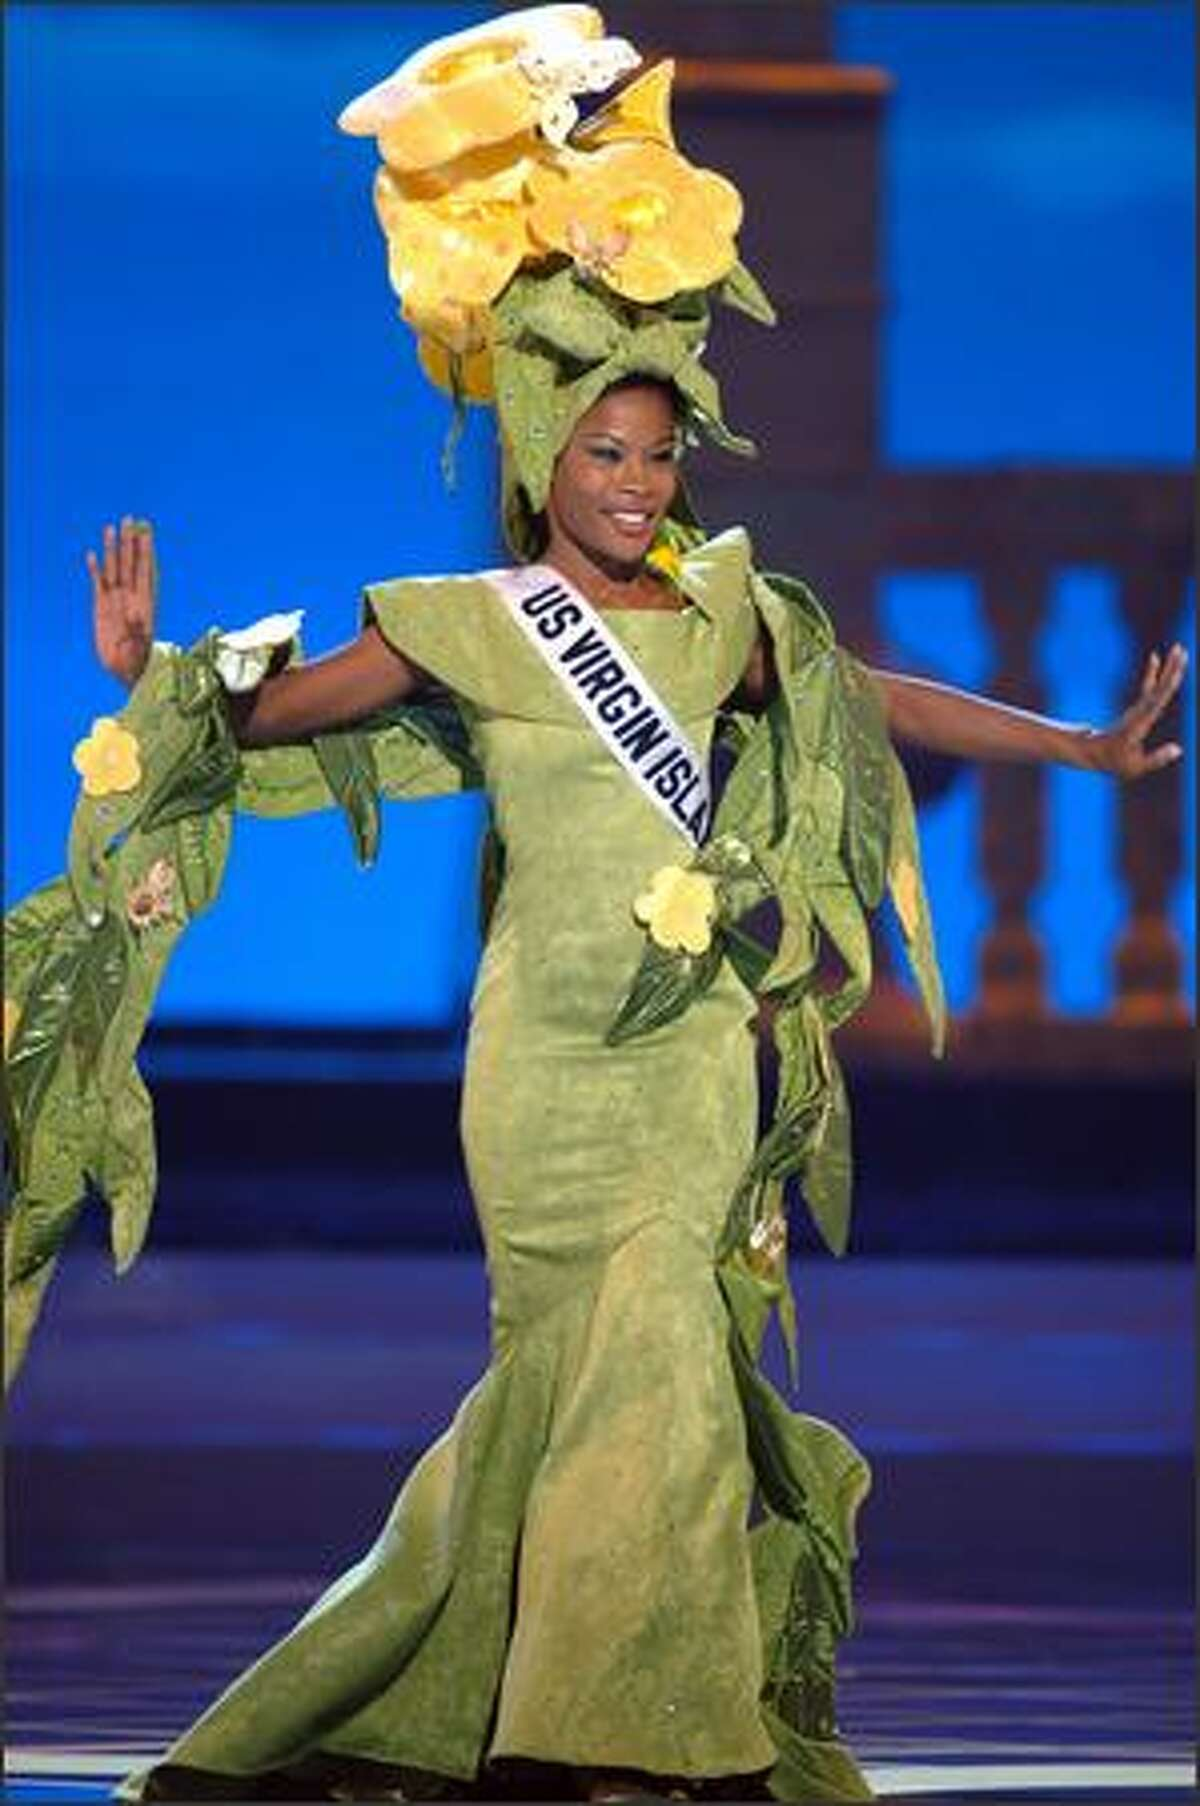 Tricia Homer, Miss U.S. Virgin Islands.